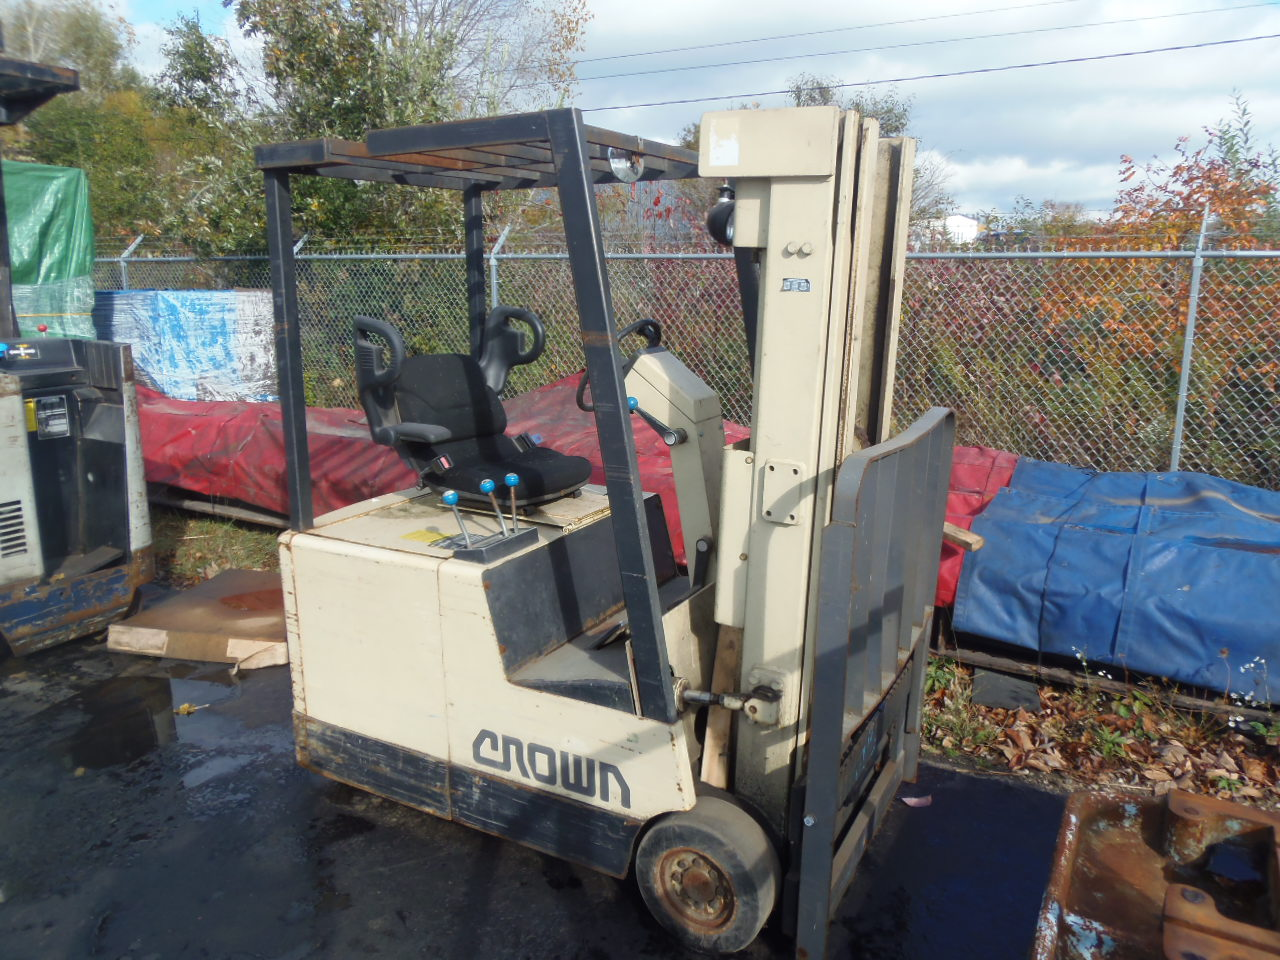 2500 LB. CROWN RIDE ALONG FORK LIFT, MODEL 30SCTT, SIDESHFT, CHARGER, NO FORKS, NO BATTERY